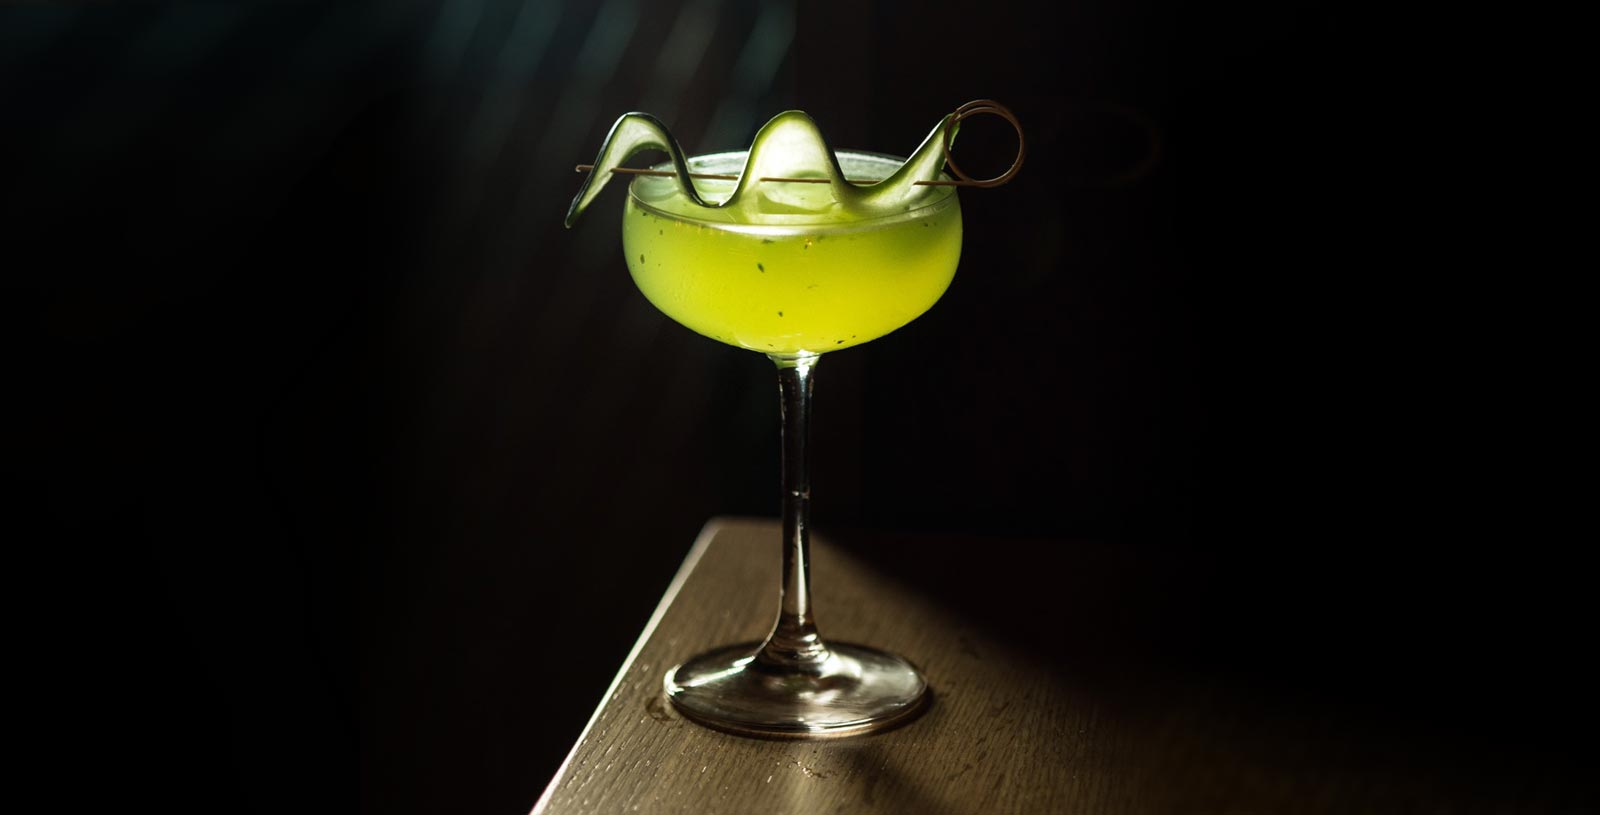 Cocktail called Green Goddess with cucumber garnished